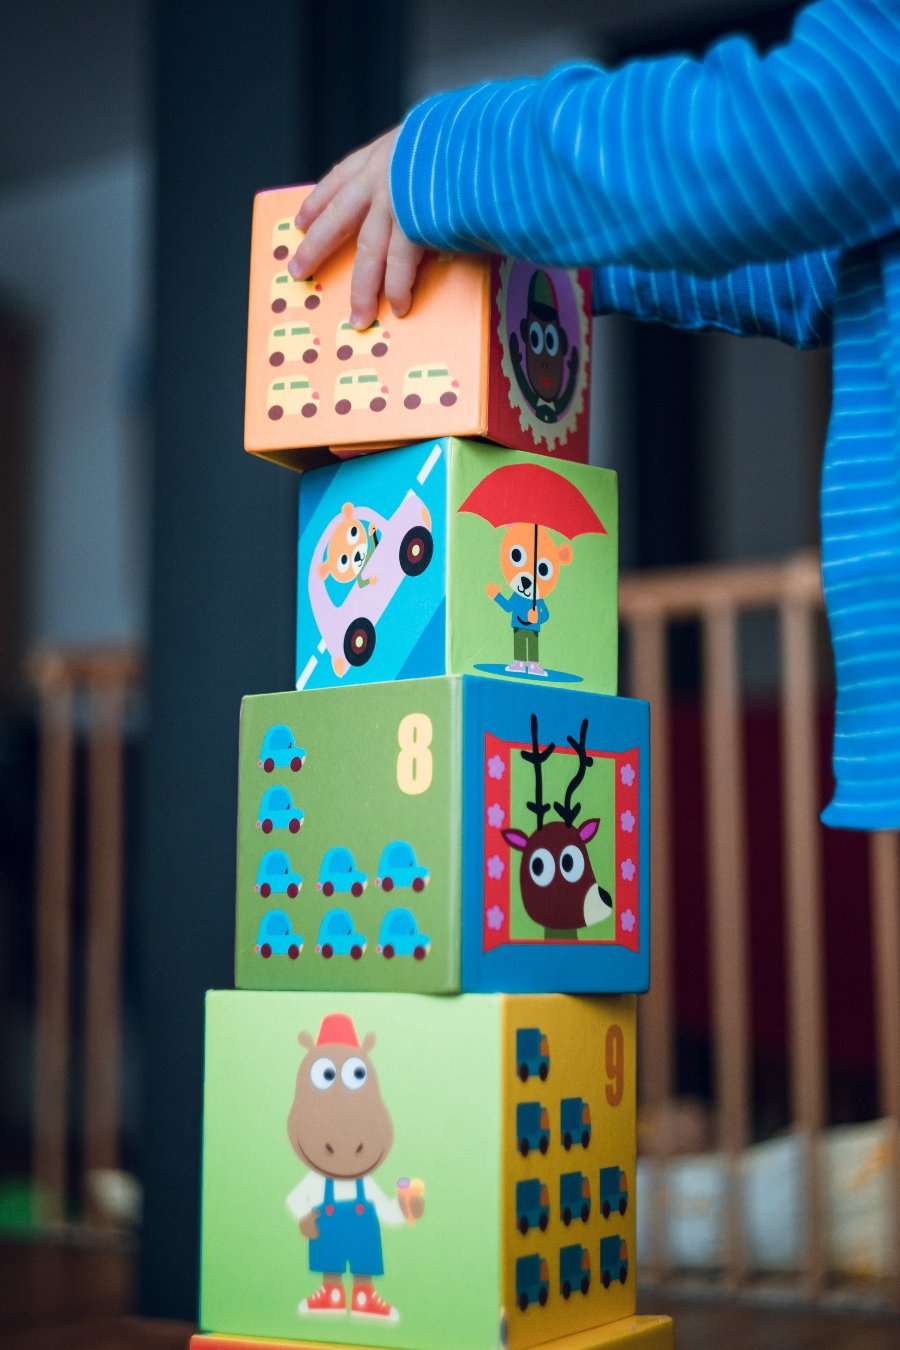 Child stacks colourful blocks on top of one another